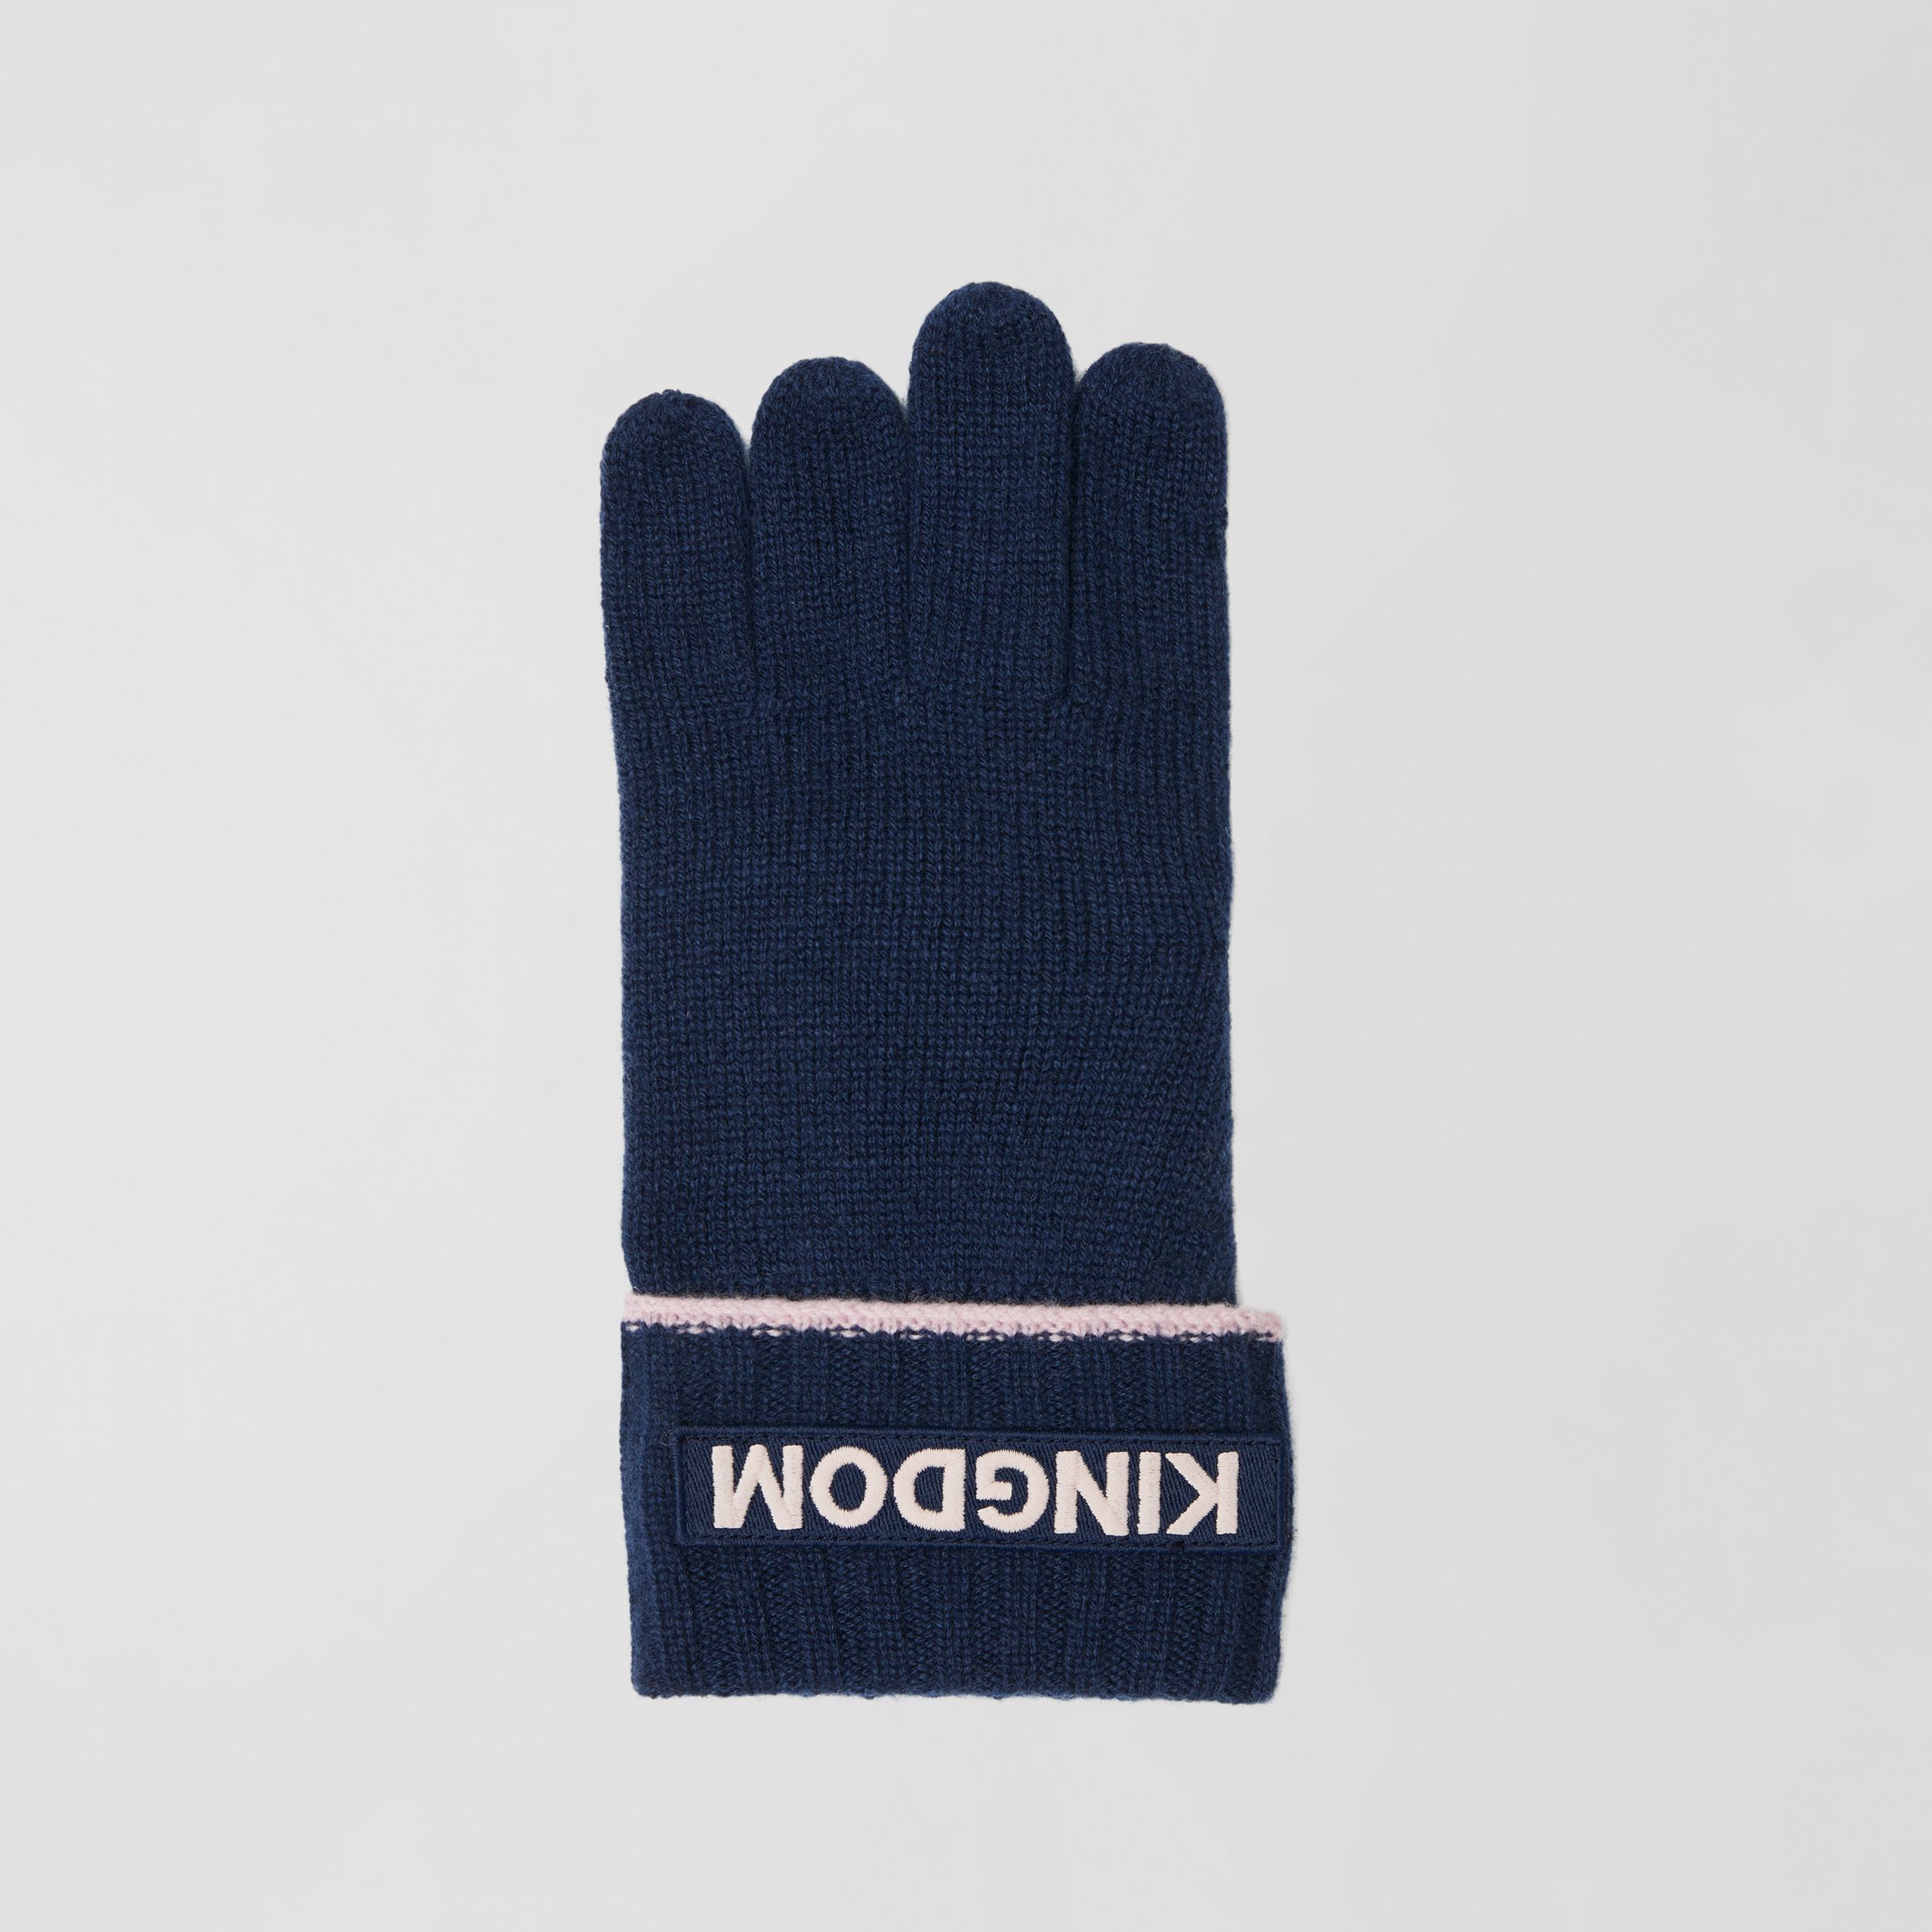 Kingdom and Logo Appliqué Cashmere Gloves in Navy | Burberry - 3